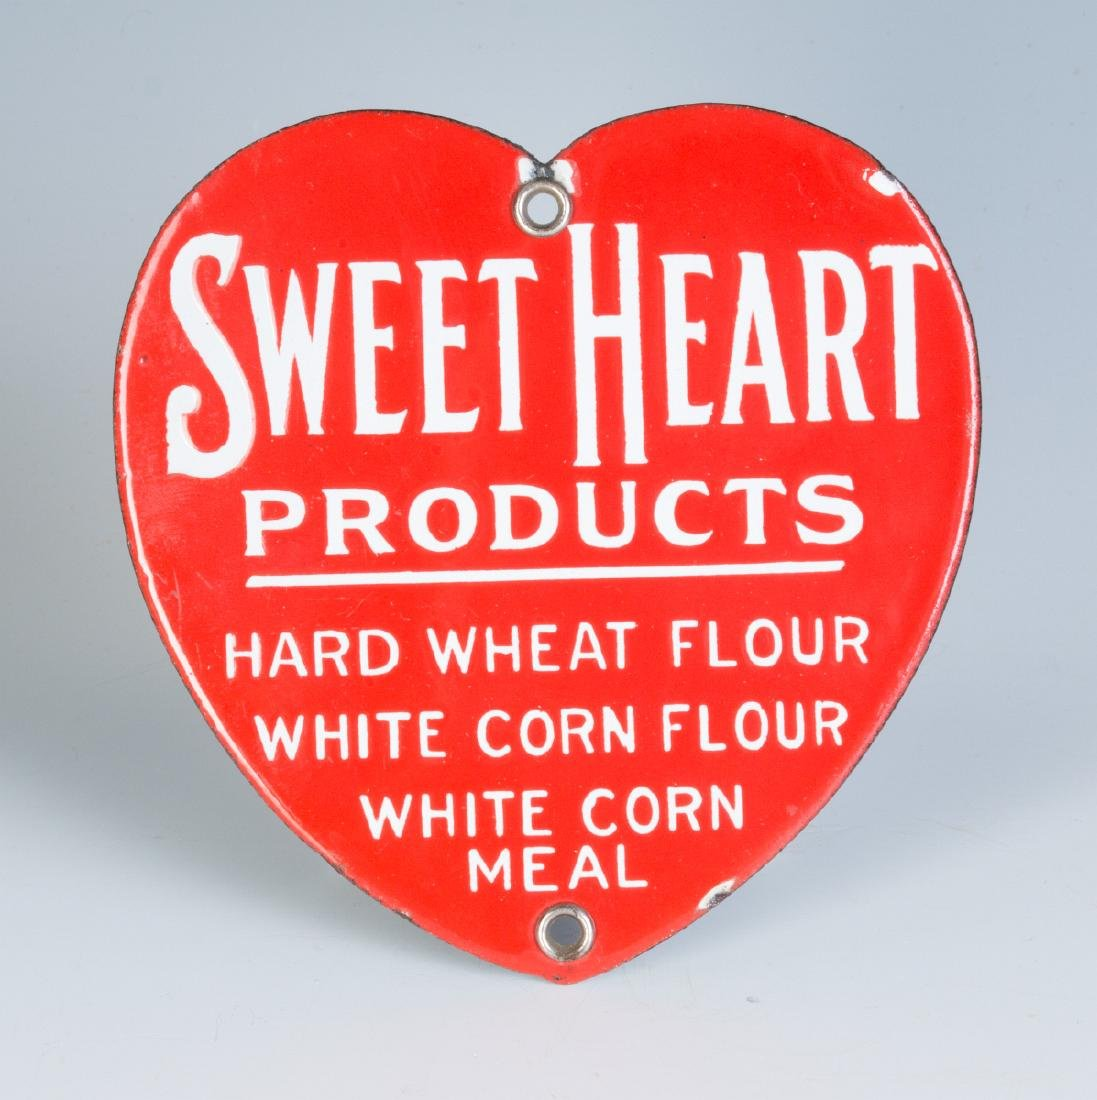 SWEET HEART PRODUCTS PORCELAIN HEART SHAPE SIGN